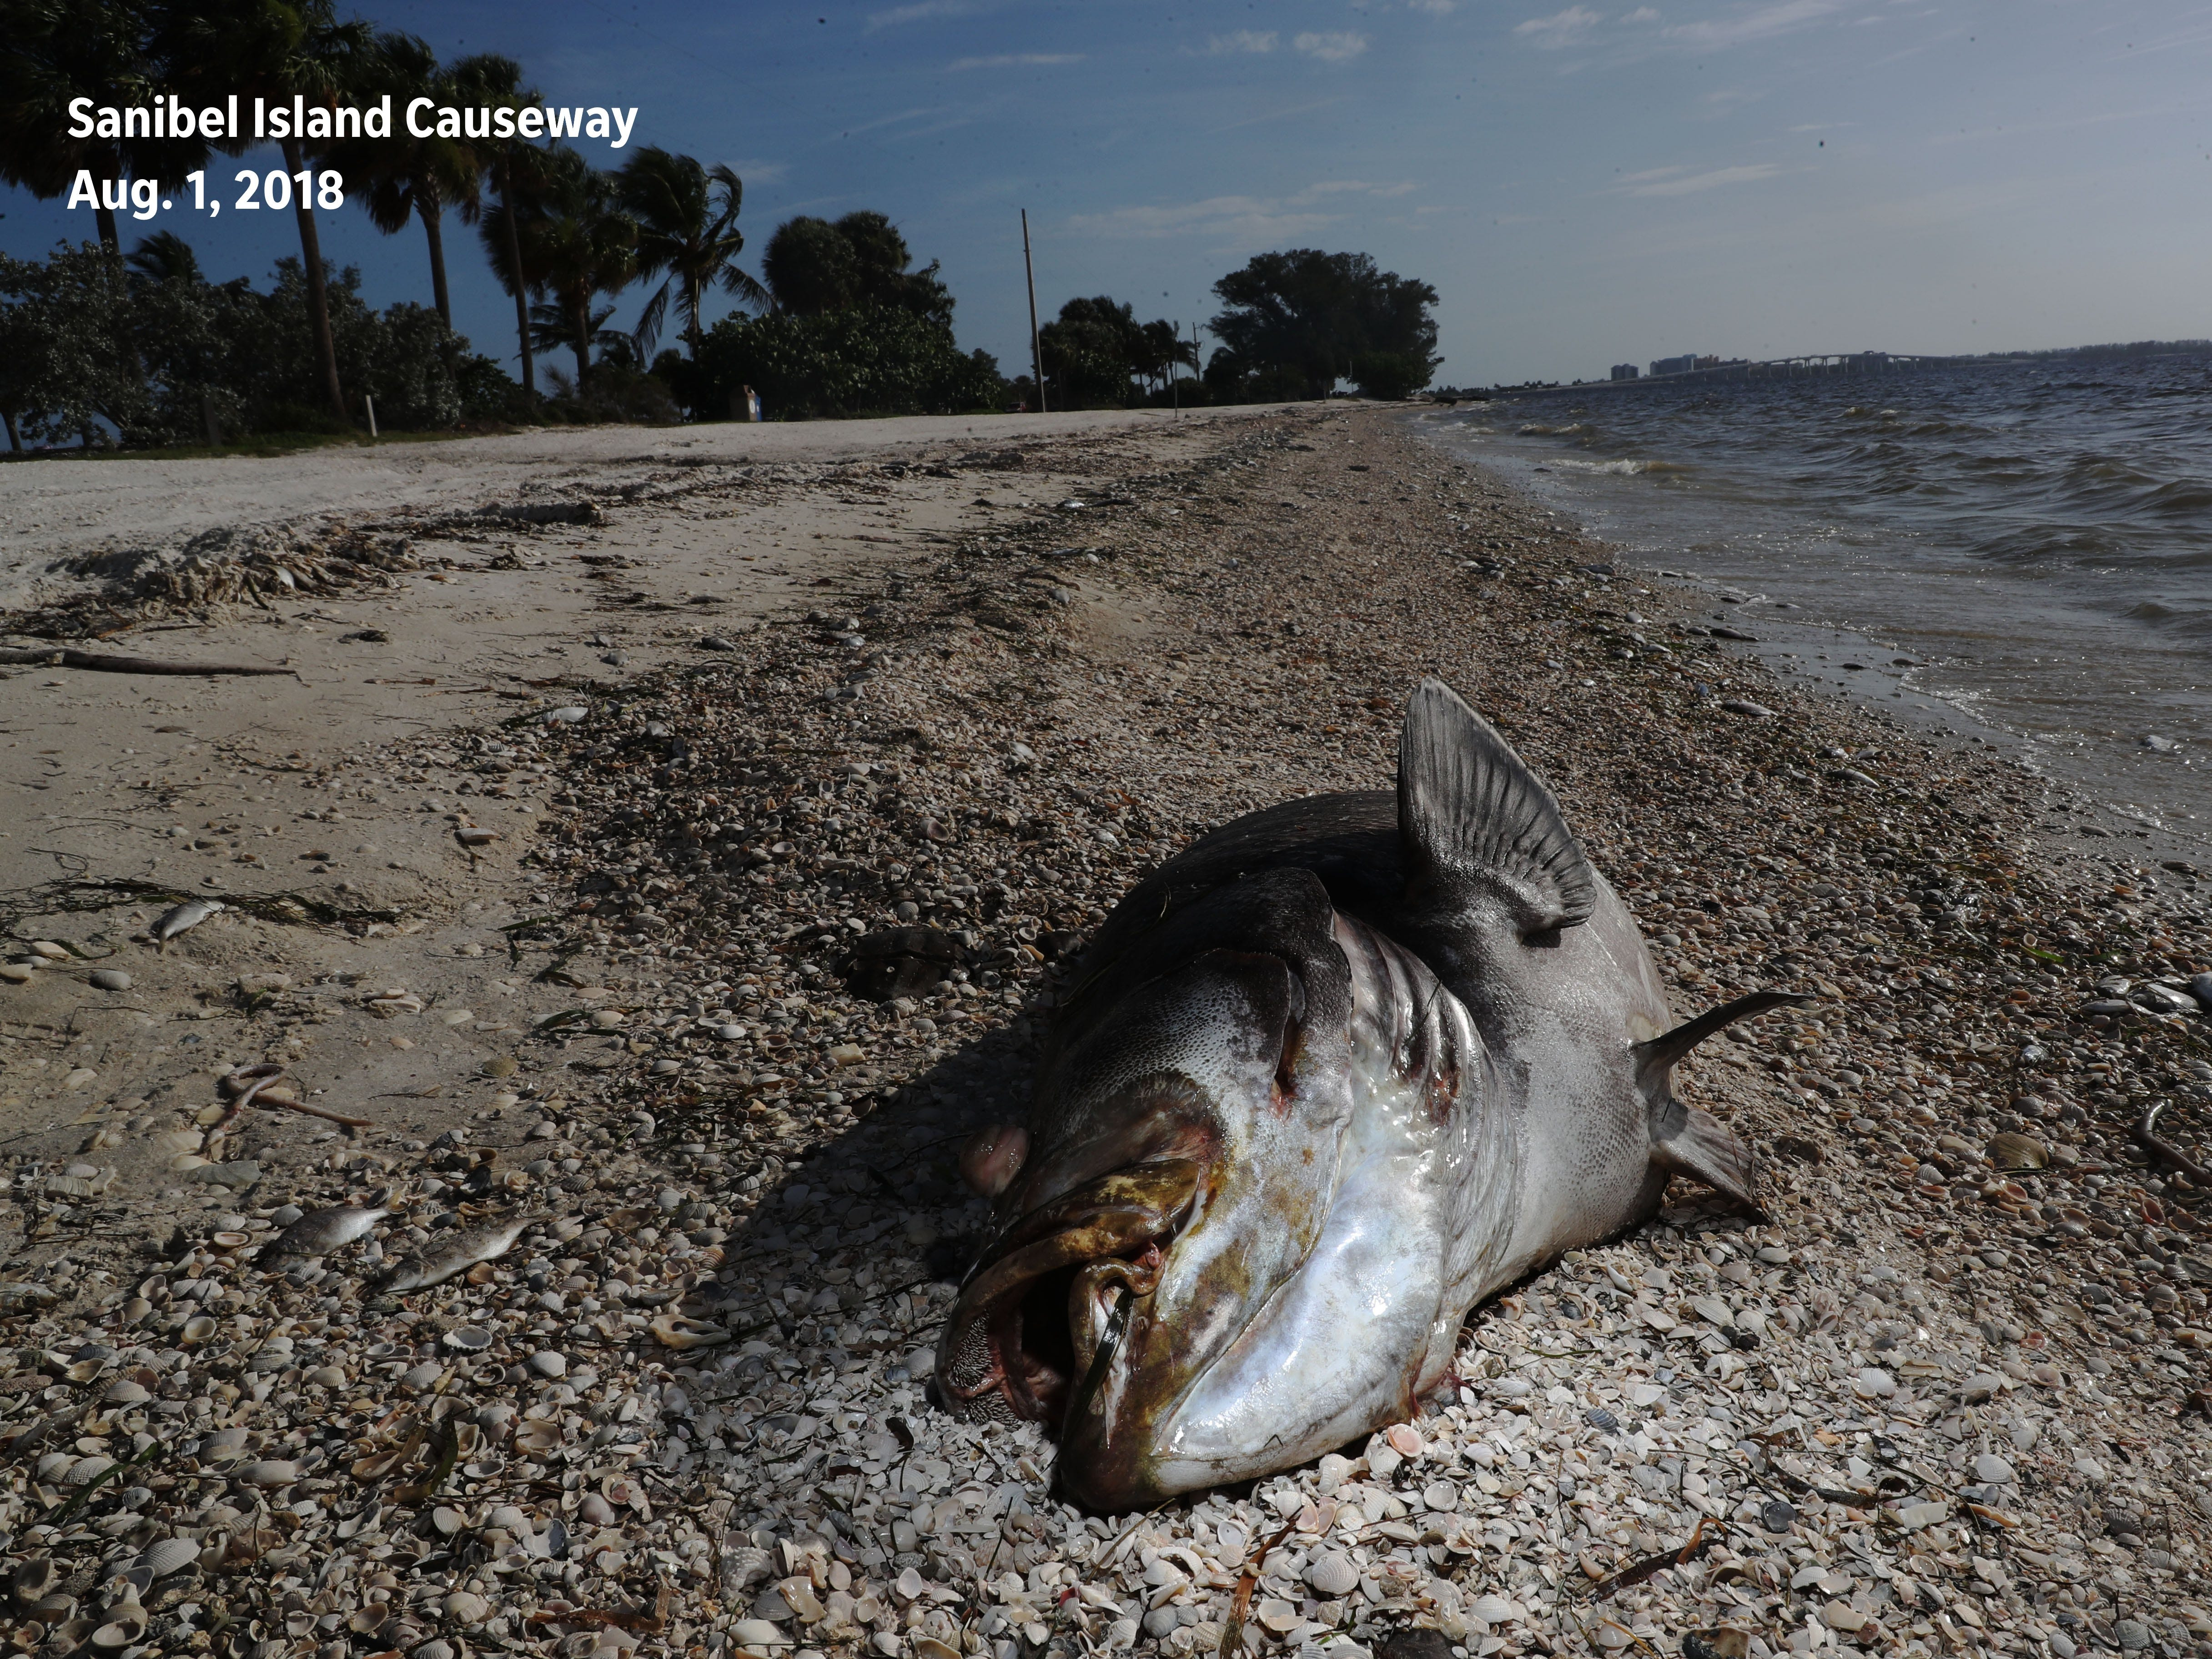 Before: A dead Goliath grouper was photographed on the Sanibel Causeway on Aug. 1, 2018.